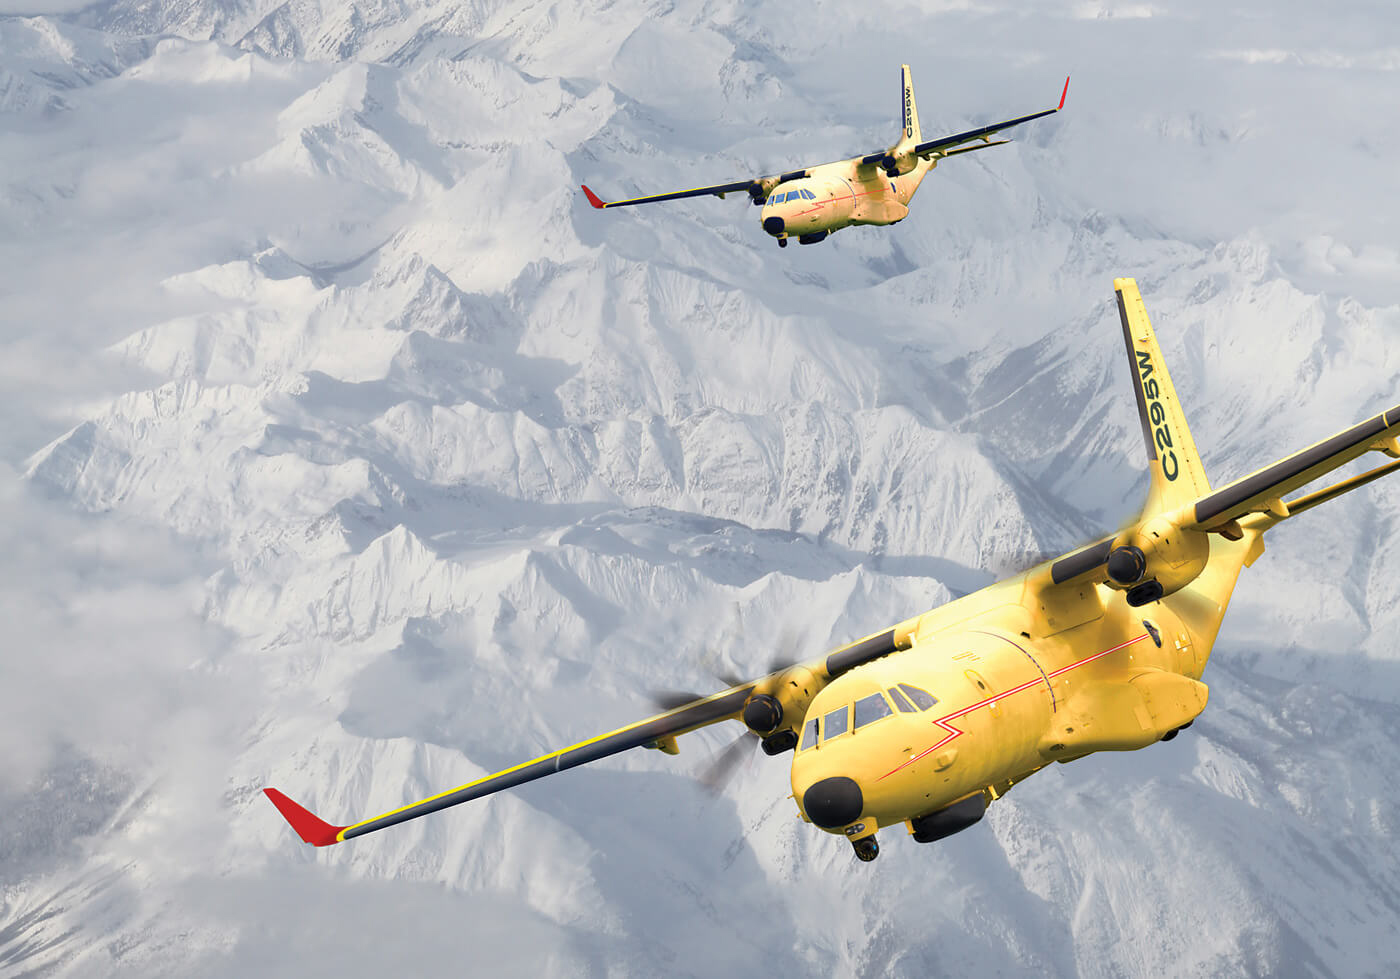 With the announcement on December 8, 2016 that Airbus' C295W has been selected as Canada's next fixed-wing search and rescue platform, the RCAF has begun preparing to receive its first aircraft in 2019 in Comox, BC. The sixteenth and final aircraft is expected to be delivered in 2022. (airbus)